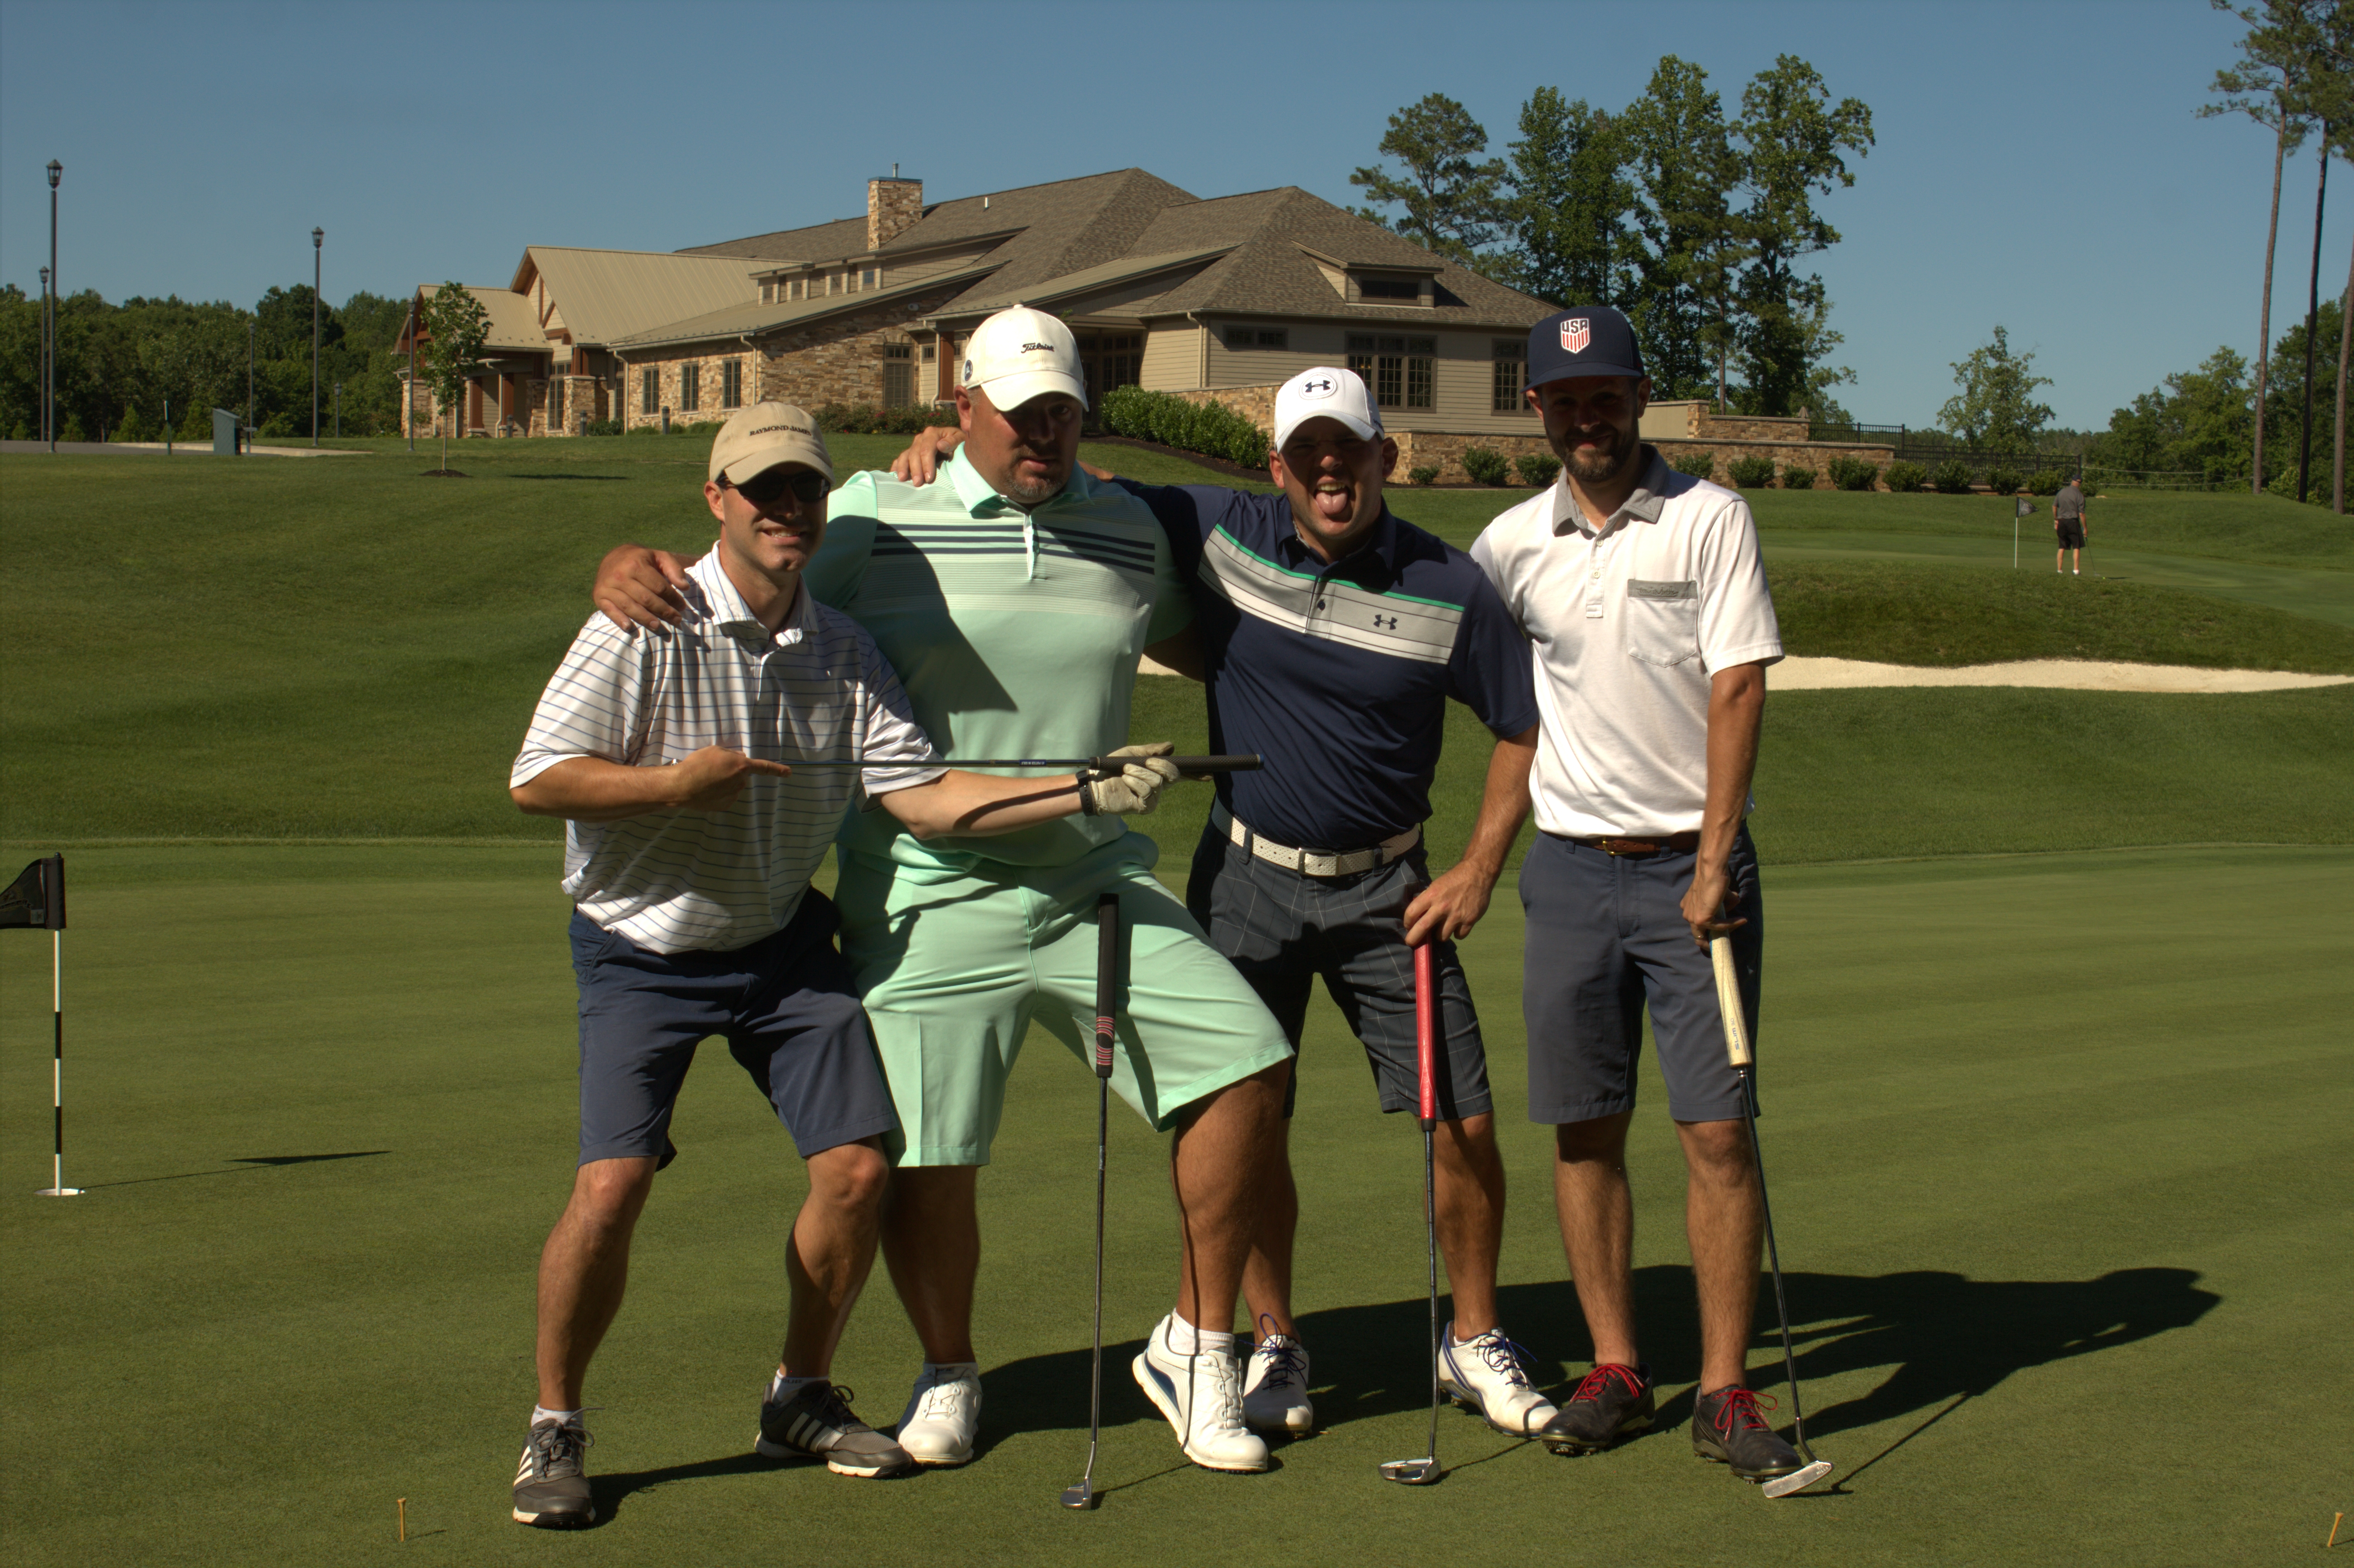 WRBA Golf Tournament Putting Contest 2019 Team-15-02.jpg